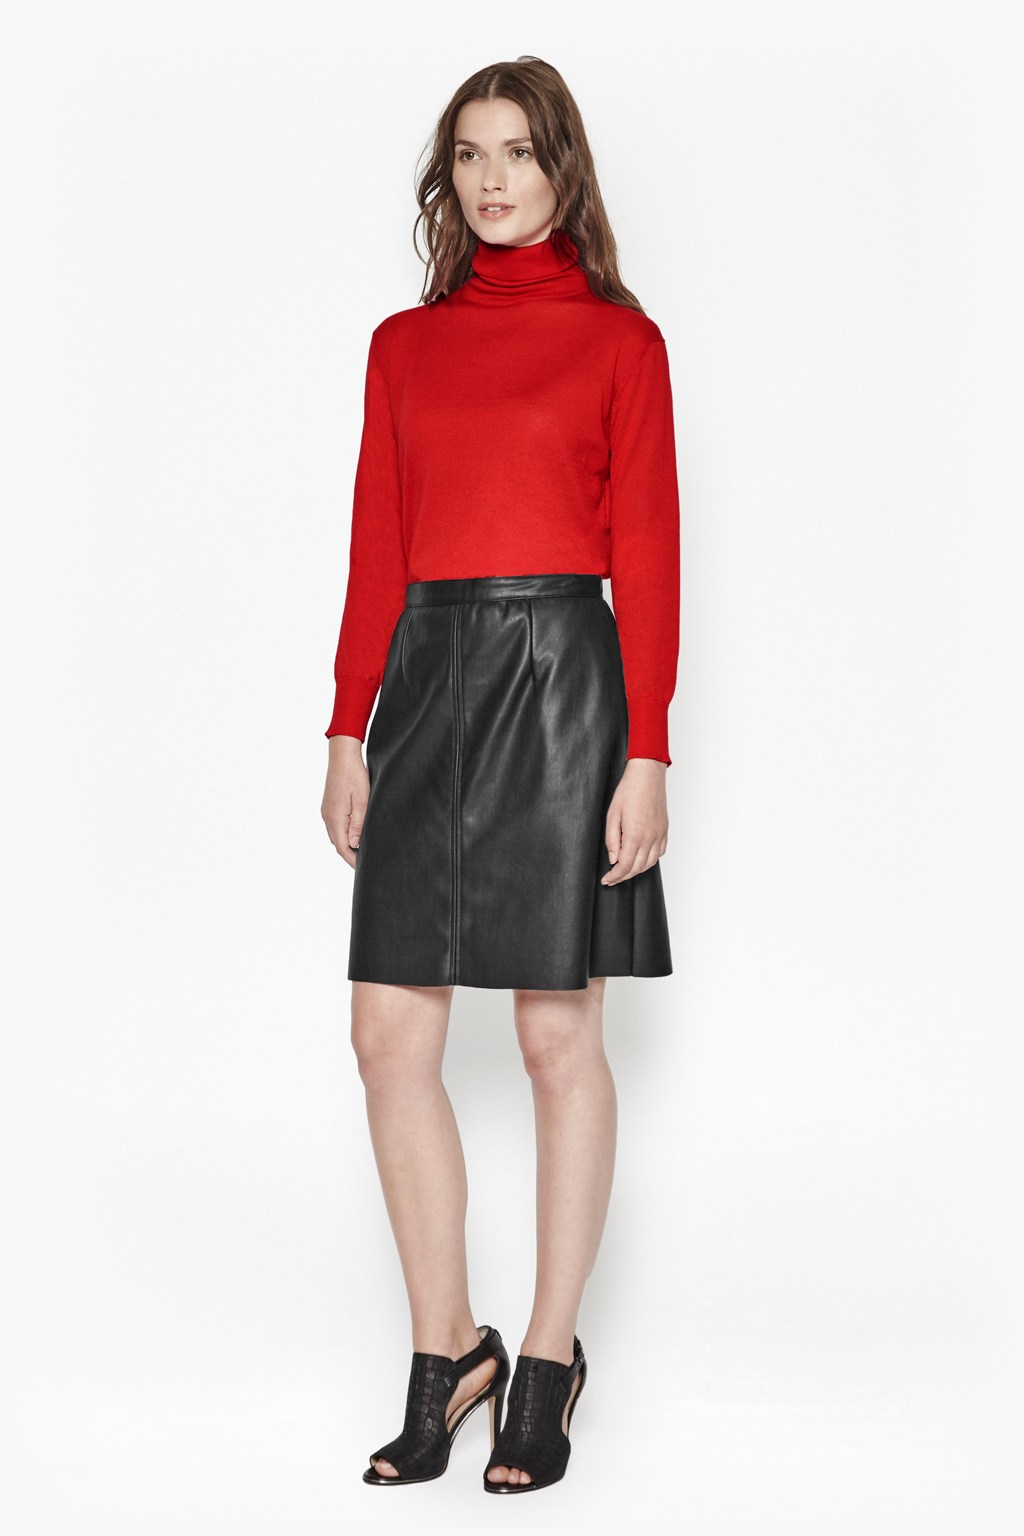 how to clean faux leather skirt